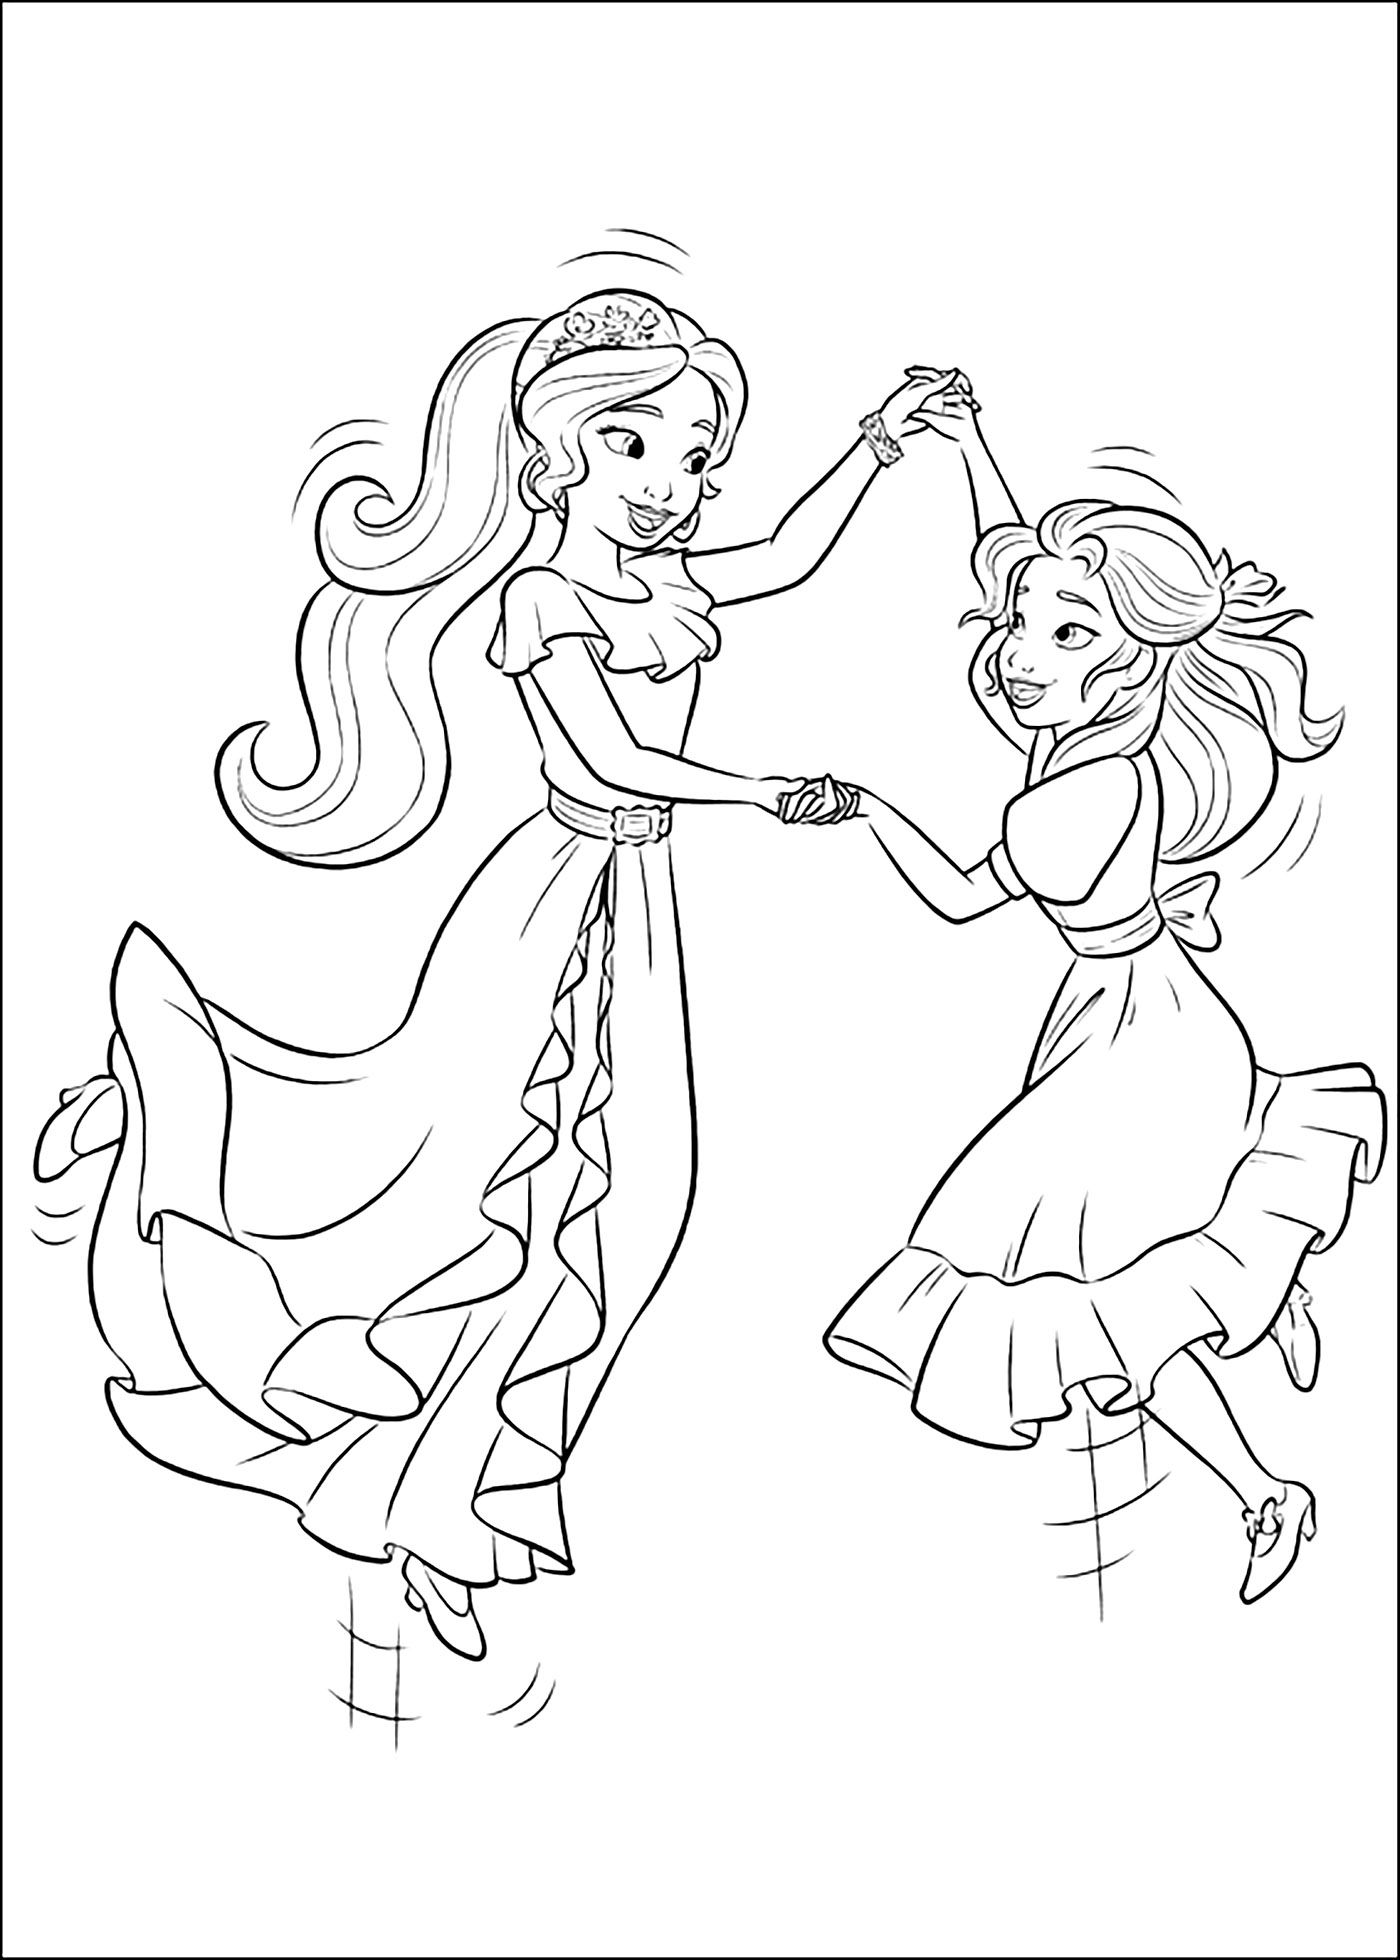 Elena Of Avalor Coloring Pages Best Coloring Pages For Kids Disney Coloring Pages Princess Coloring Pages Disney Princess Coloring Pages